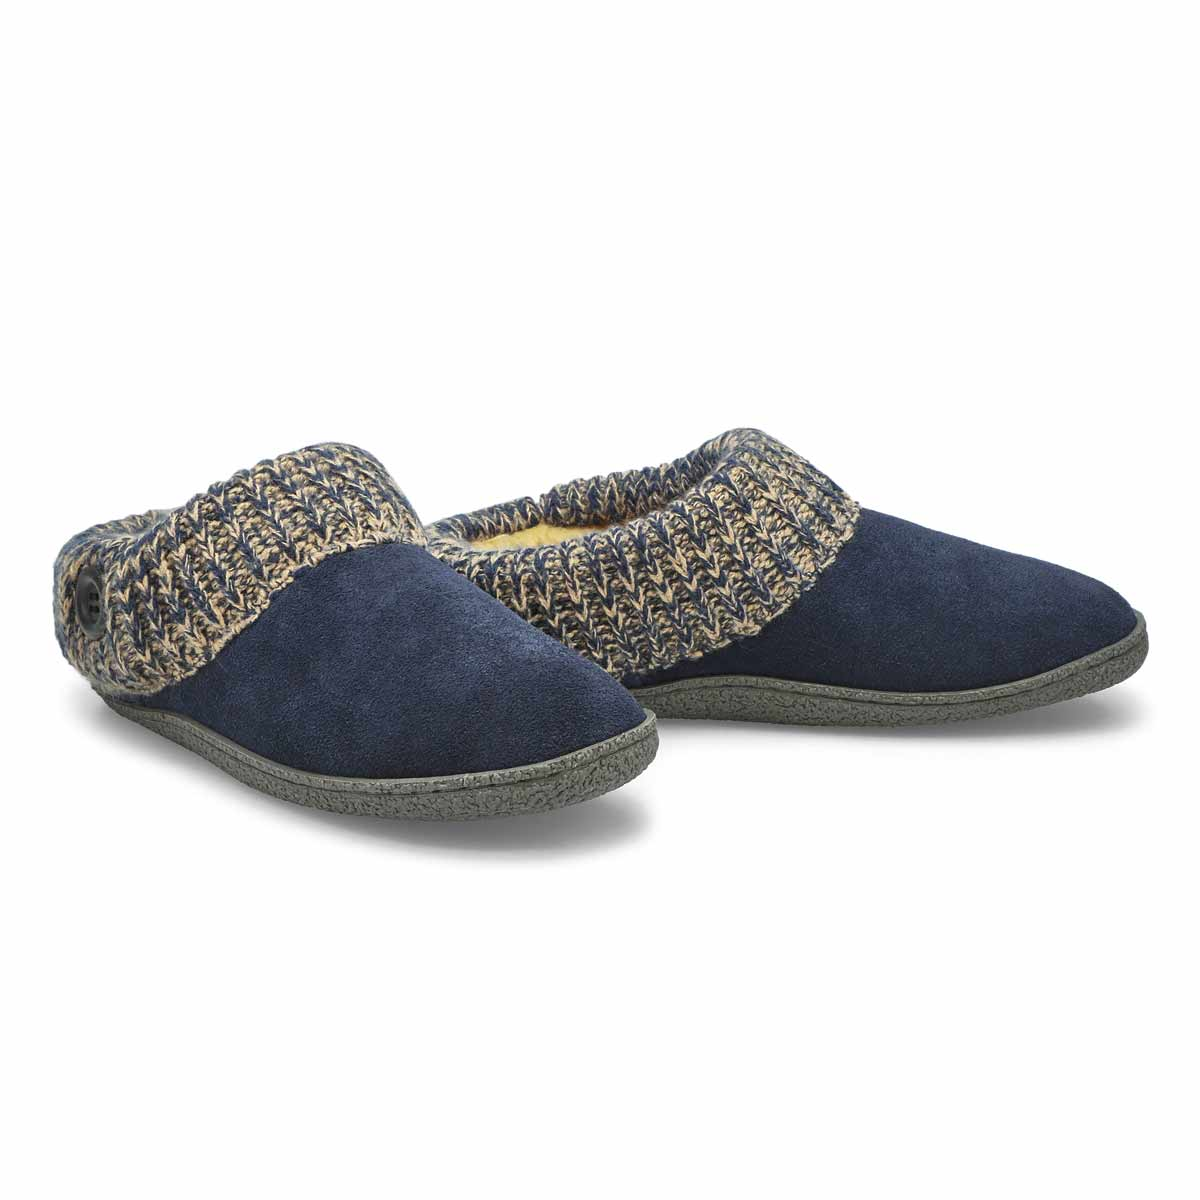 Lds Dini navy memory foam slipper